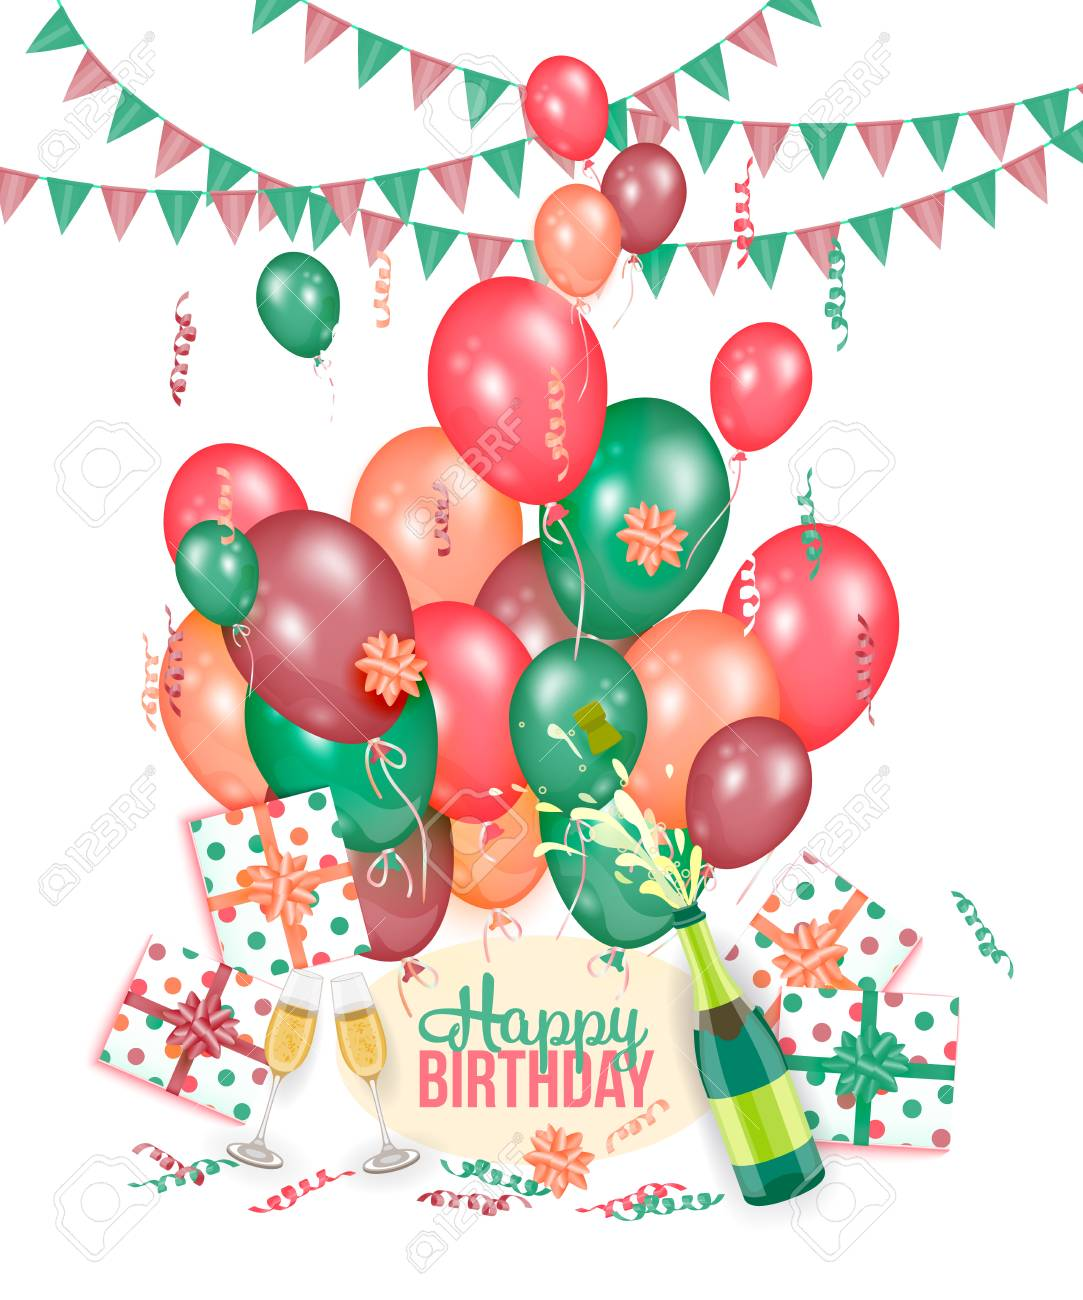 Happy Birthday Greeting Card With Champagne Balloons Presents